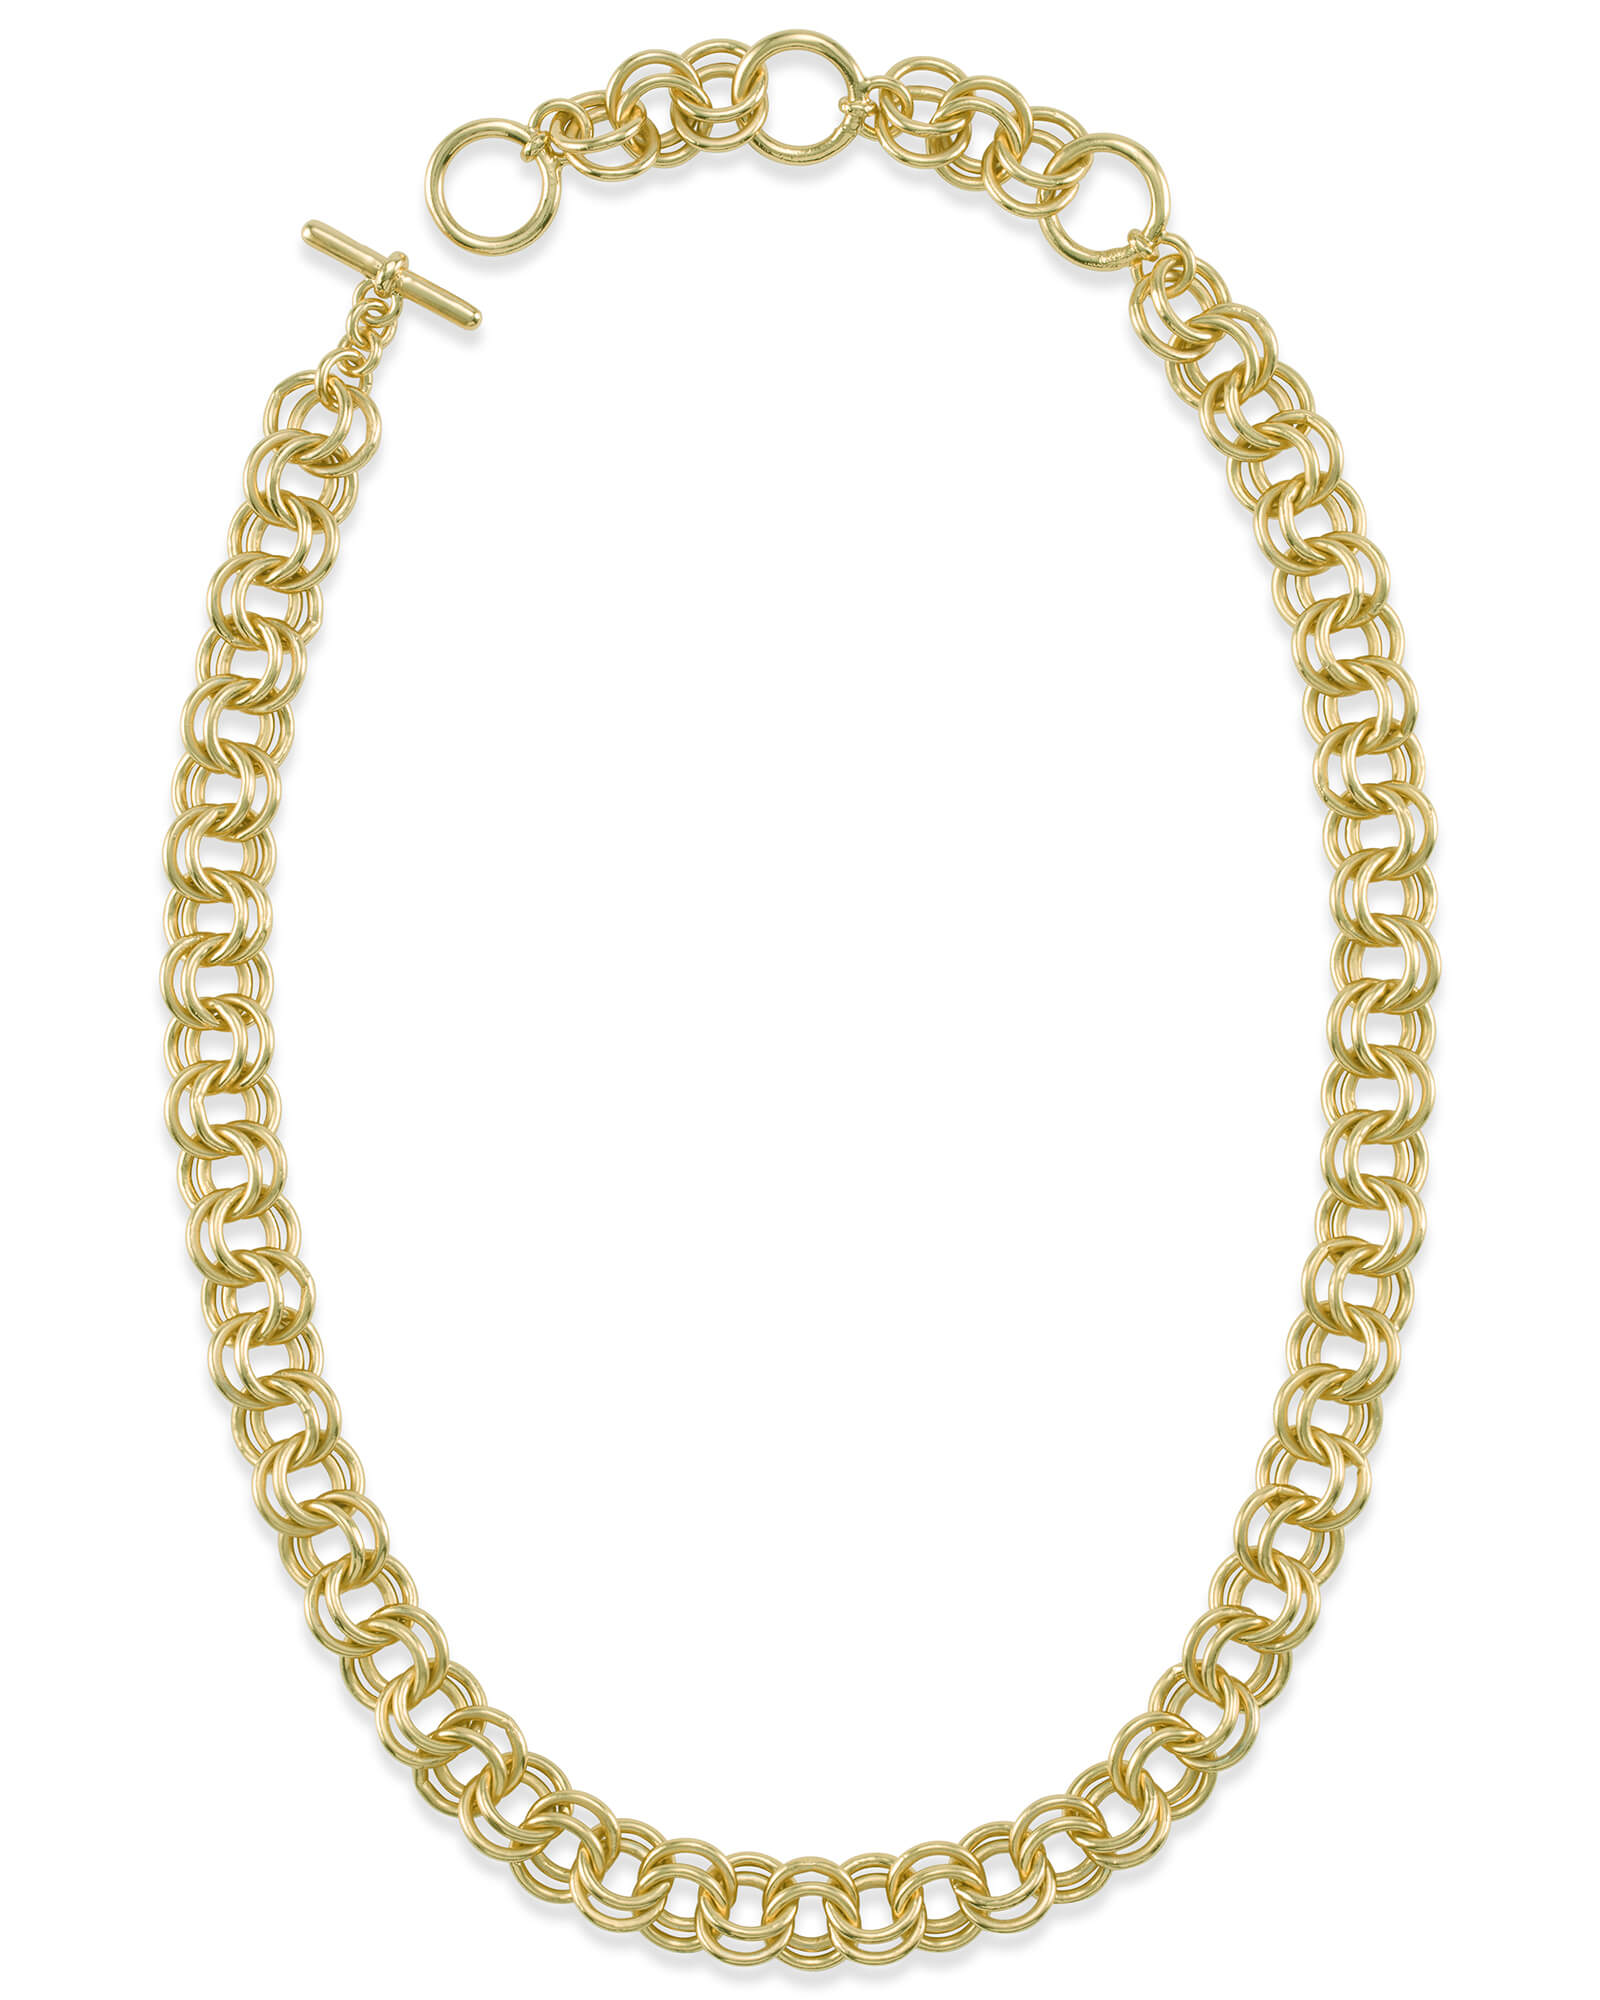 18 Inch Double Chain Link Necklace